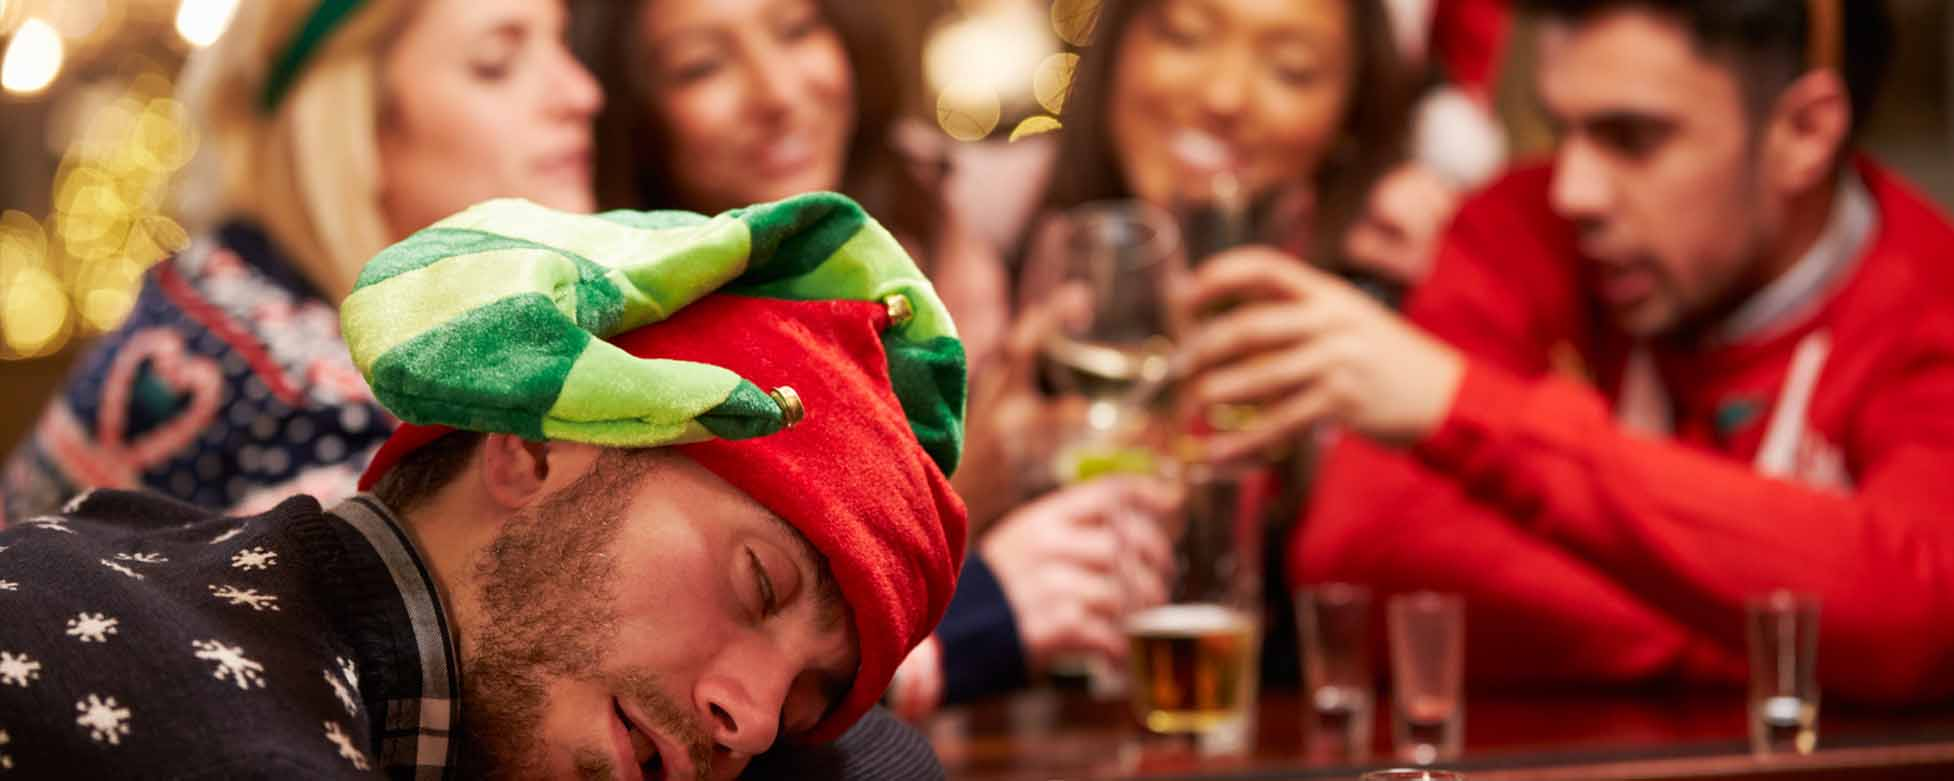 Social Media and Office Christmas Parties Don't Mix